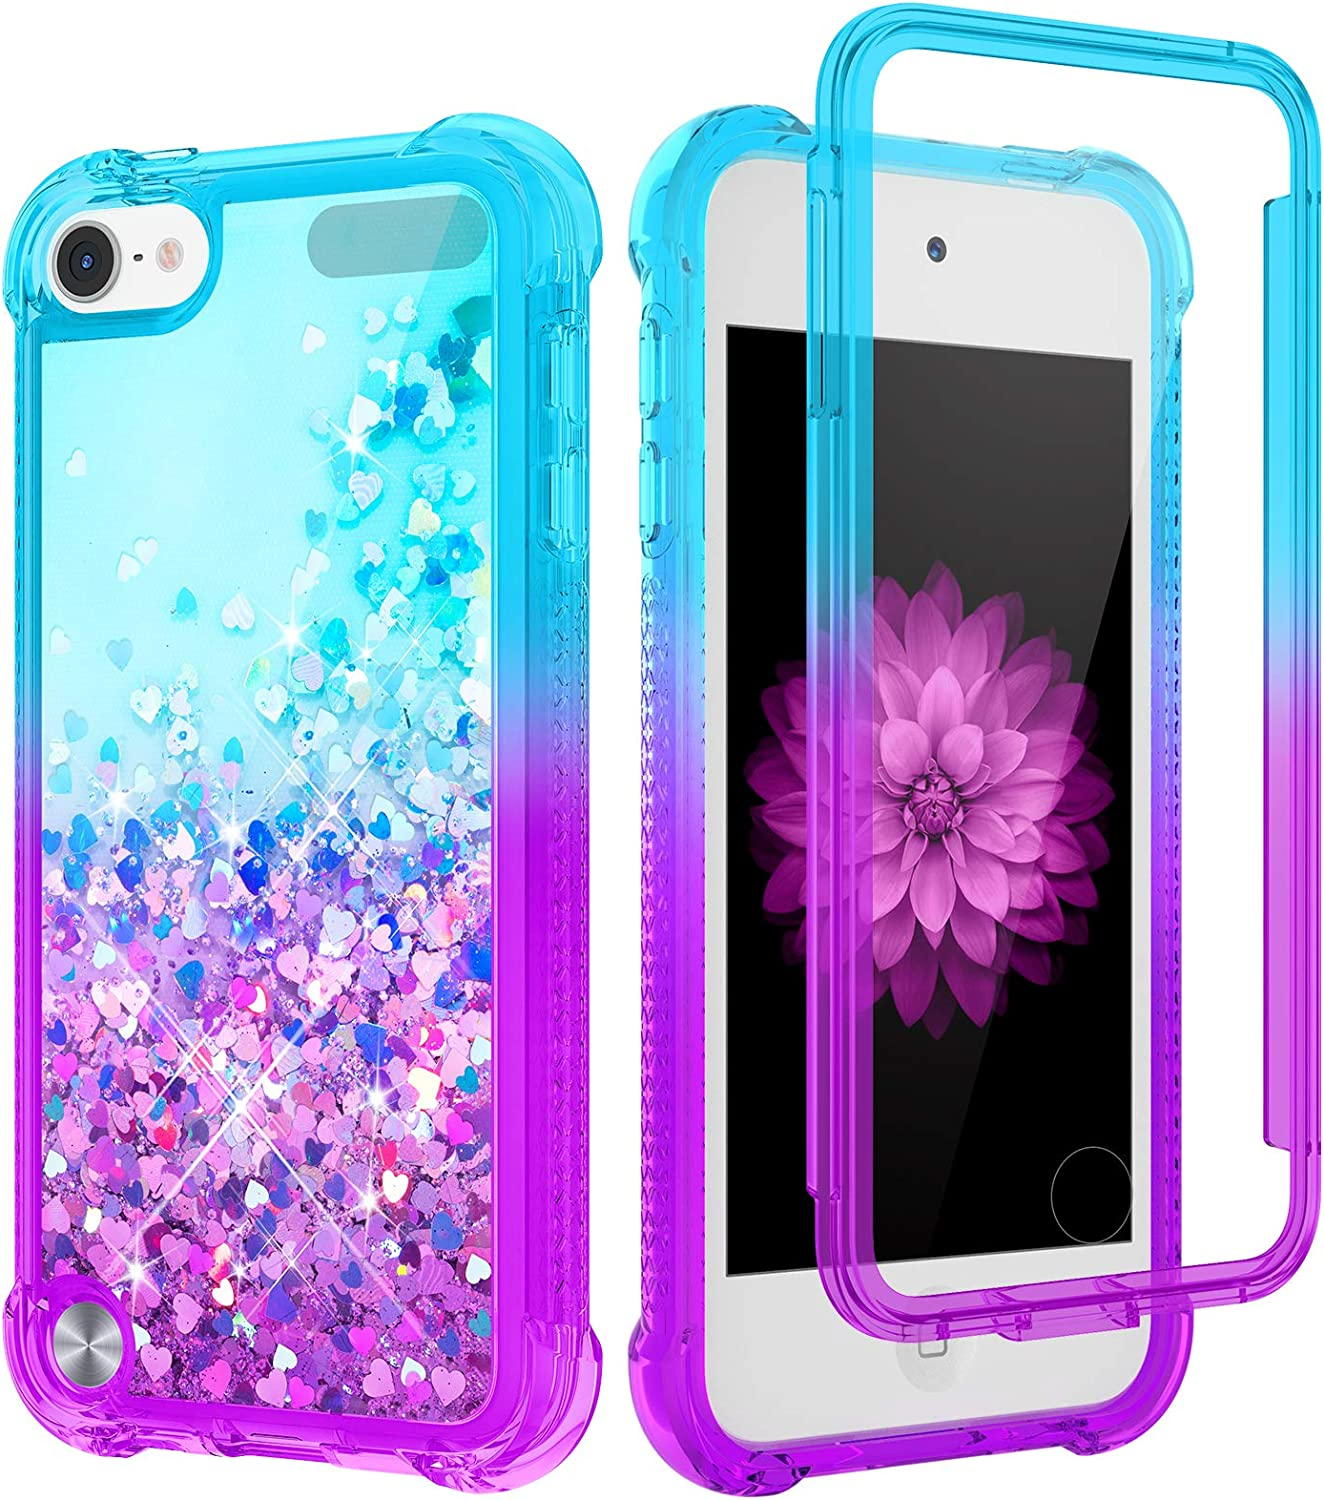 Caka iPod Touch 7th 6th 5th Generation Case, iPod Touch 7 Case Glitter for Girls Women Full Body with Built in Screen Protector Liquid Protective Case for iPod Touch 7th 6th 5th (Teal Purple)